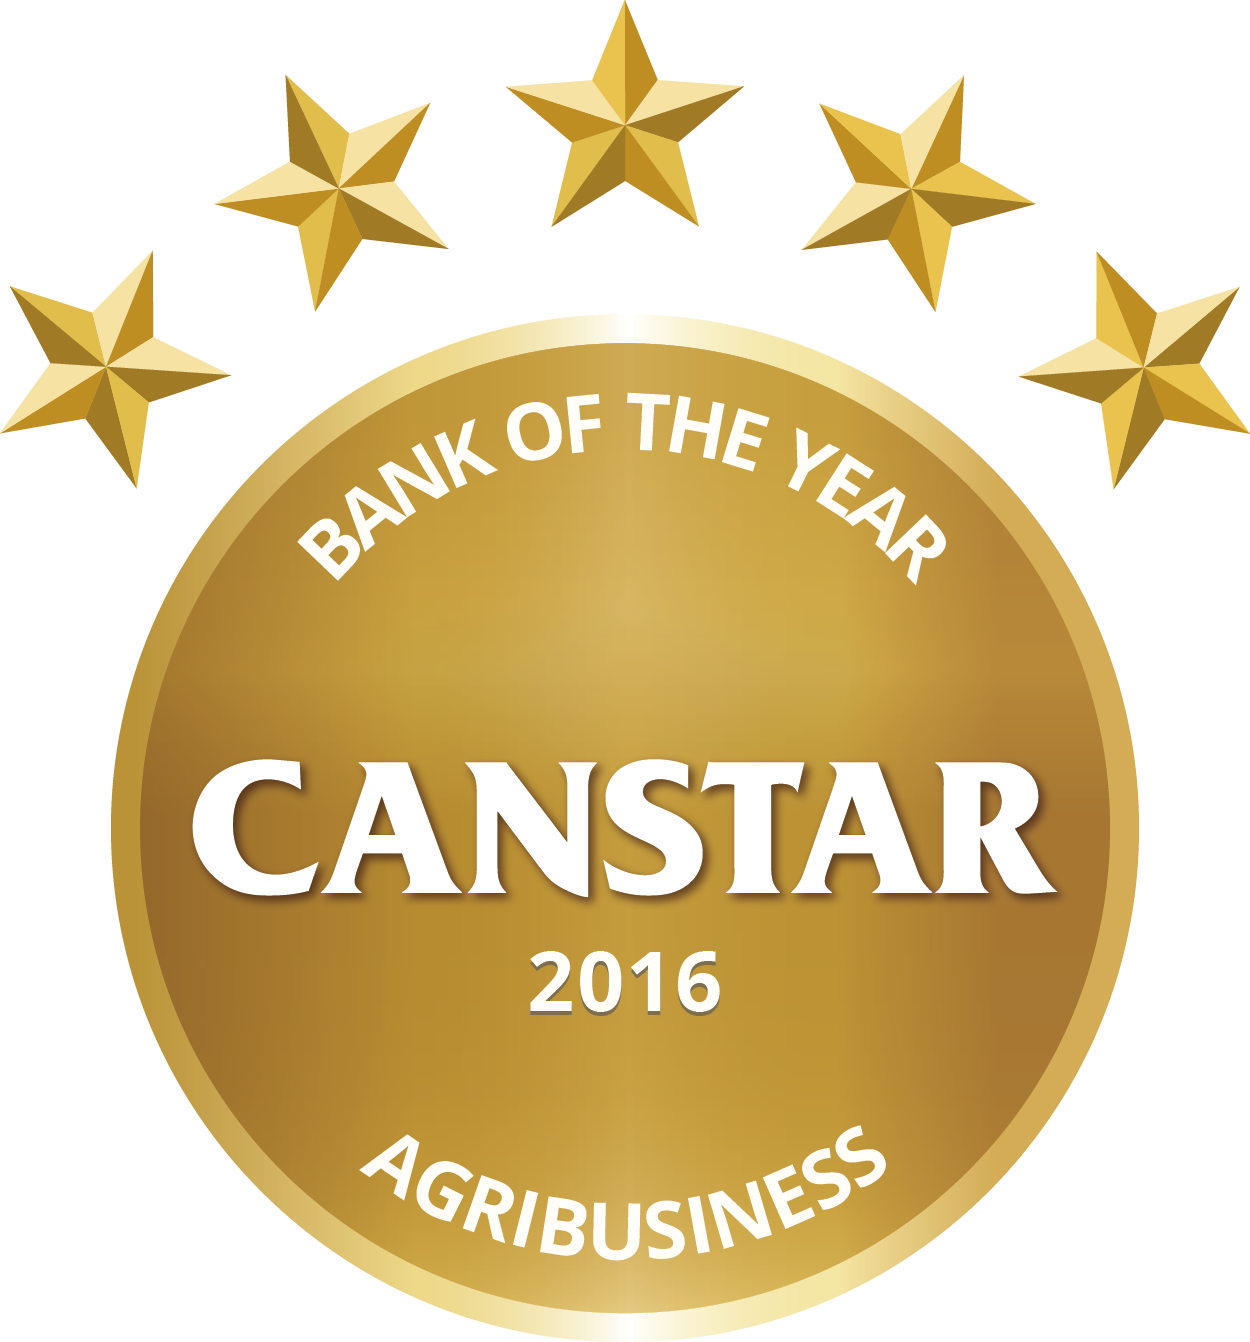 CANSTAR 2016 – Bank of the Year – Agribusiness